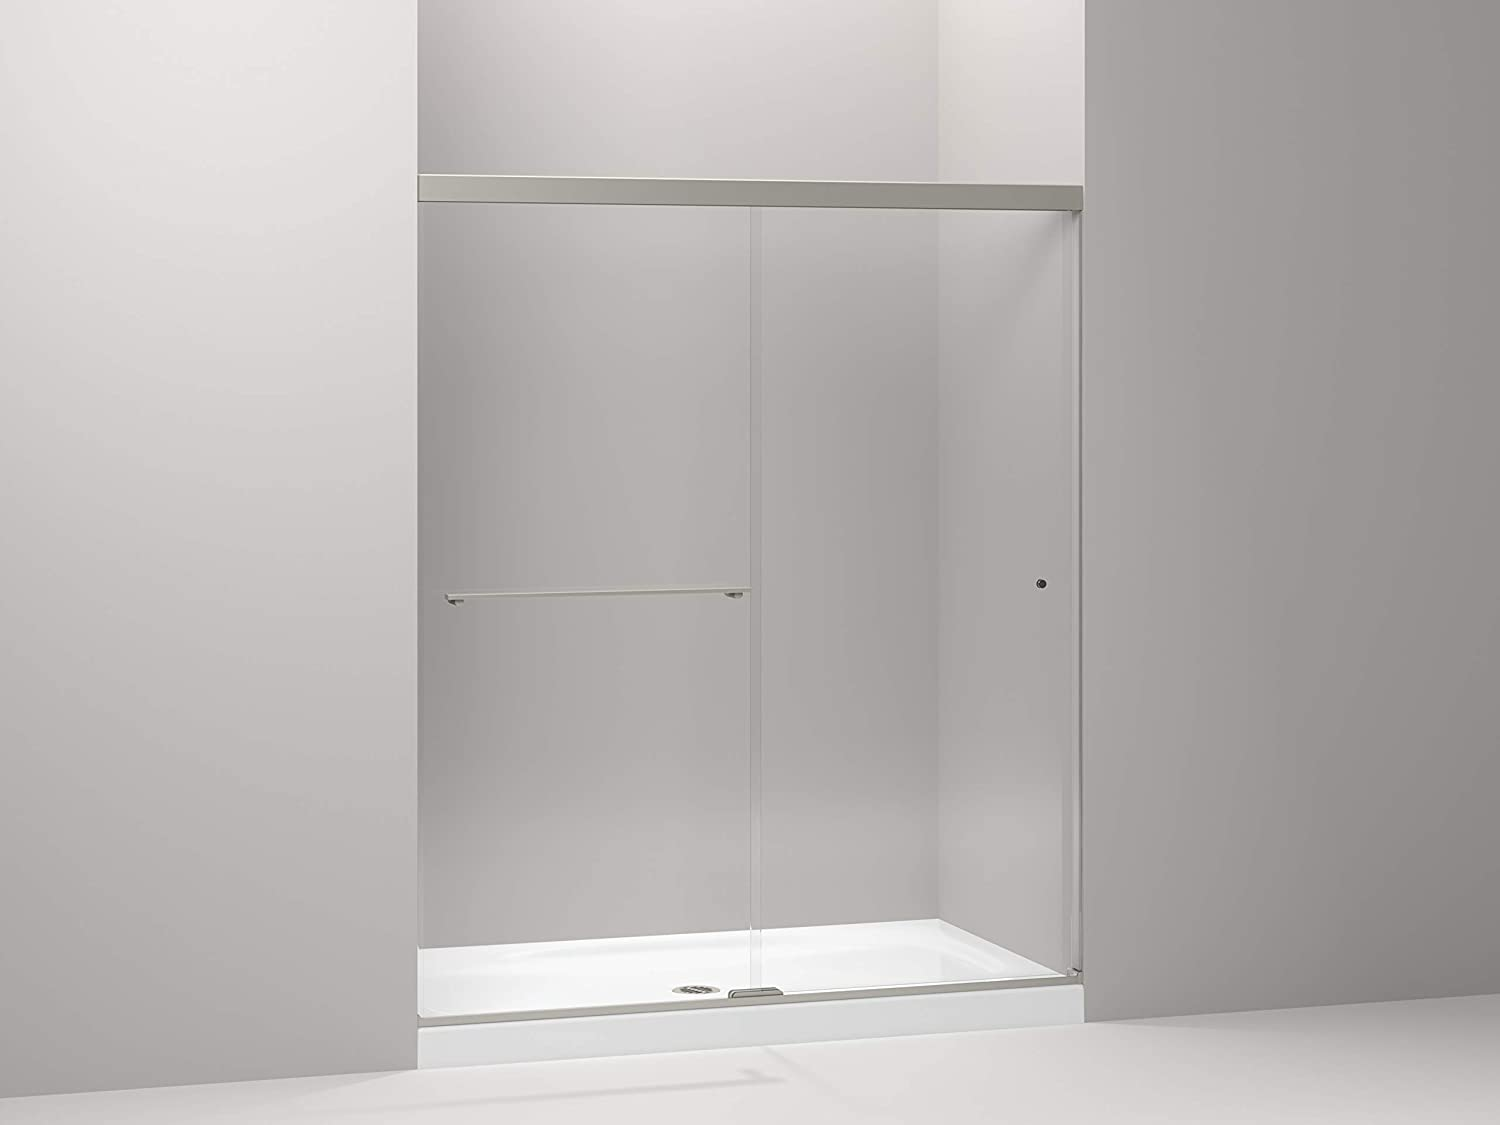 Kohler 707206 L Bnk Revel Shower Door Crystal Clear Glass With Anodized Brushed Nickel Frame Amazon Com